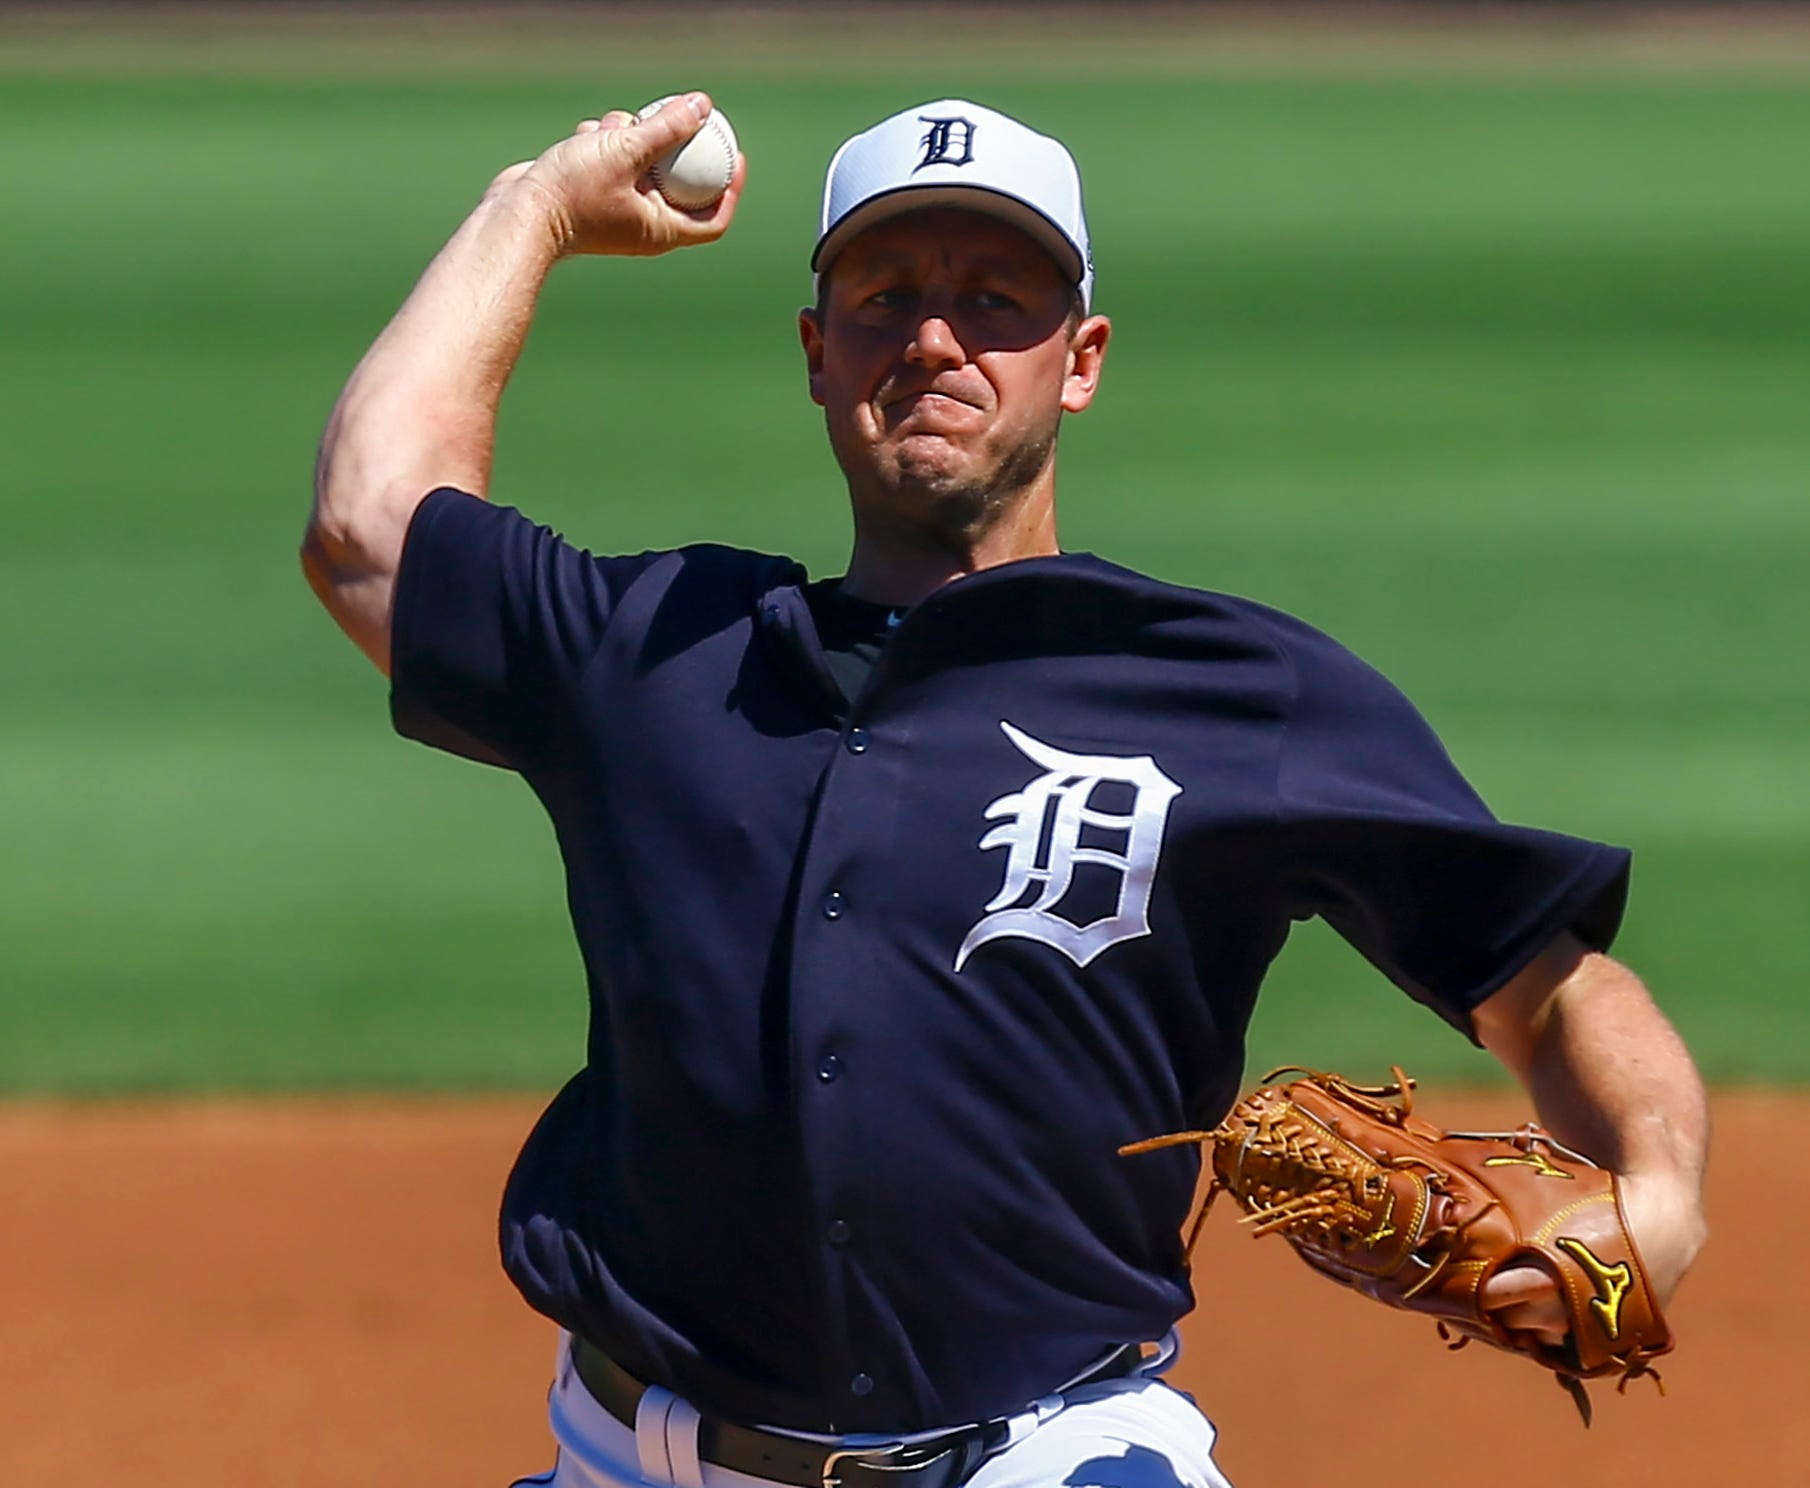 Tigers pitcher Jordan Zimmermann throws a pitch during the first inning of the Tigers' 3-1 exhibition loss to the Phillies at Publix Field at Joker Marchant Stadium on Thursday, March 7, 2019.